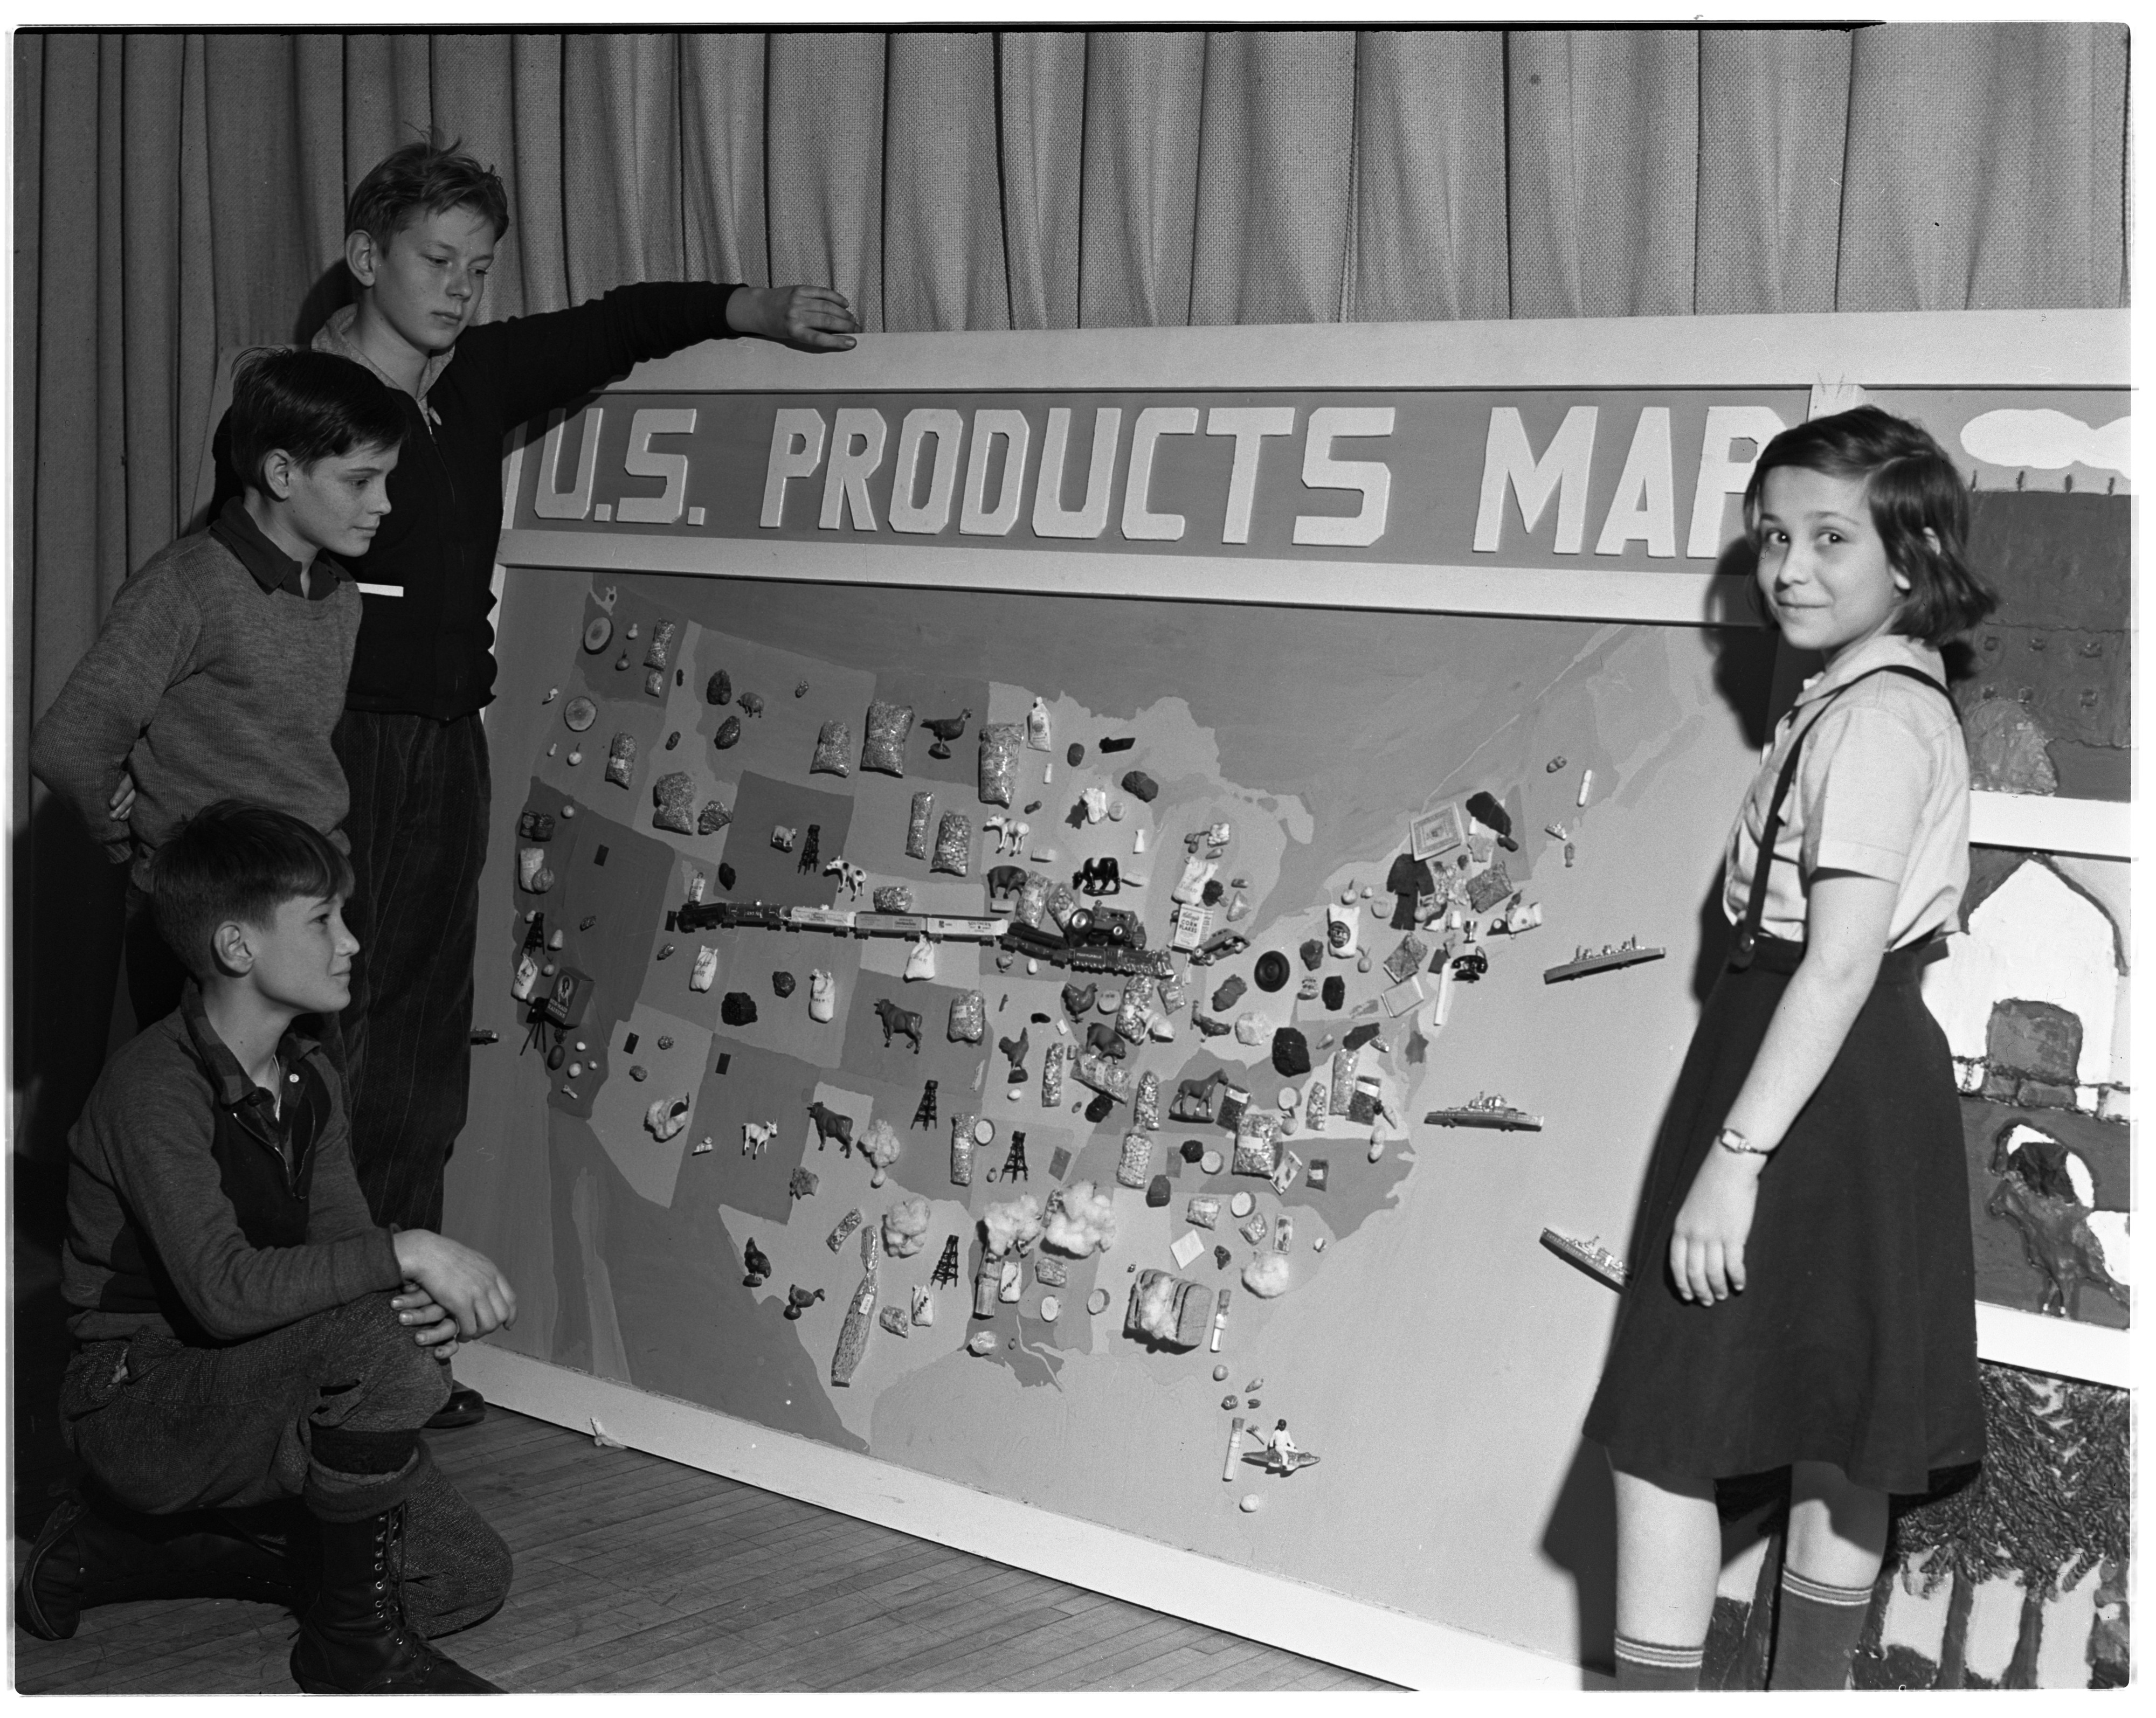 U. S. products map created by students at Angell School, January 1940 image